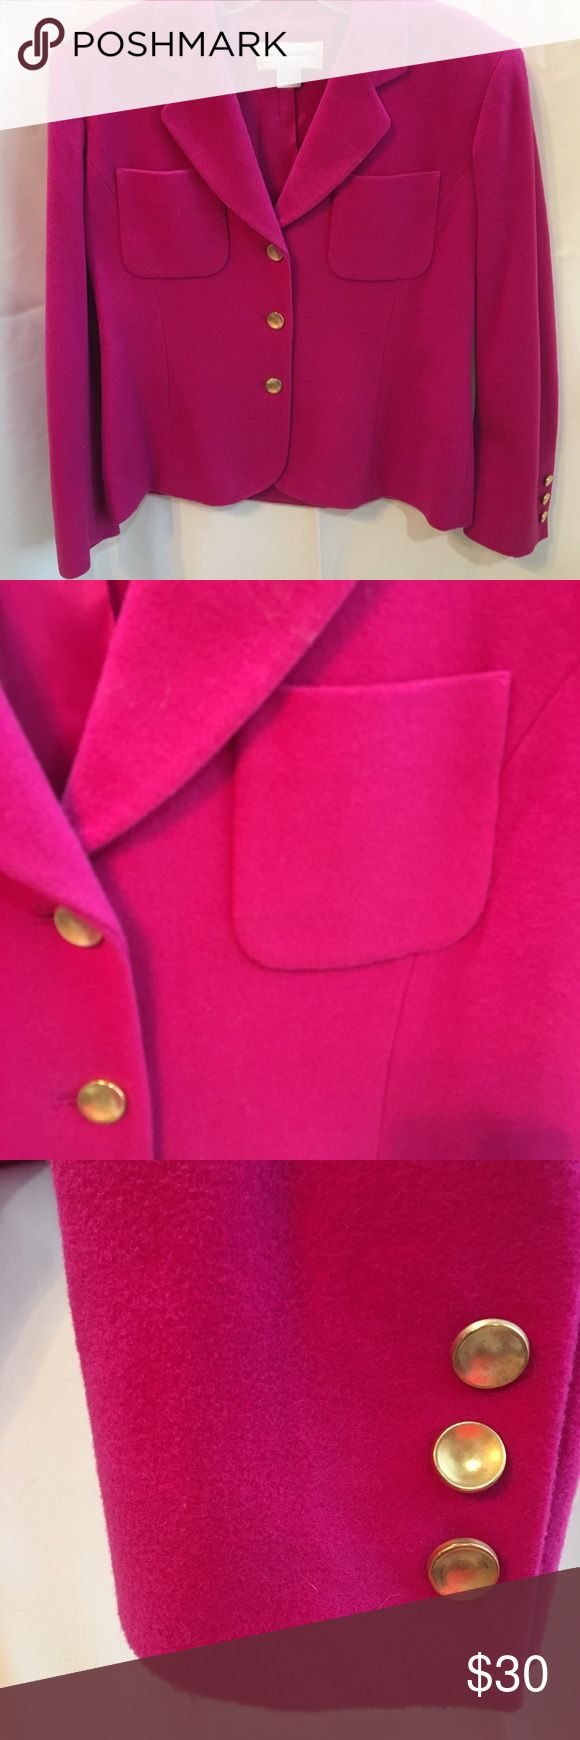 """Liz Claiborne Hot Pink Blazer 6 Like New pre owned 80% wool 20% nylon Fully lined Dual front flat chest pockets  40"""" chest  22"""" length  34"""" waist   21' outer shoulder to sleeve ends   16"""" shoulder width Liz Claiborne Jackets & Coats Blazers"""